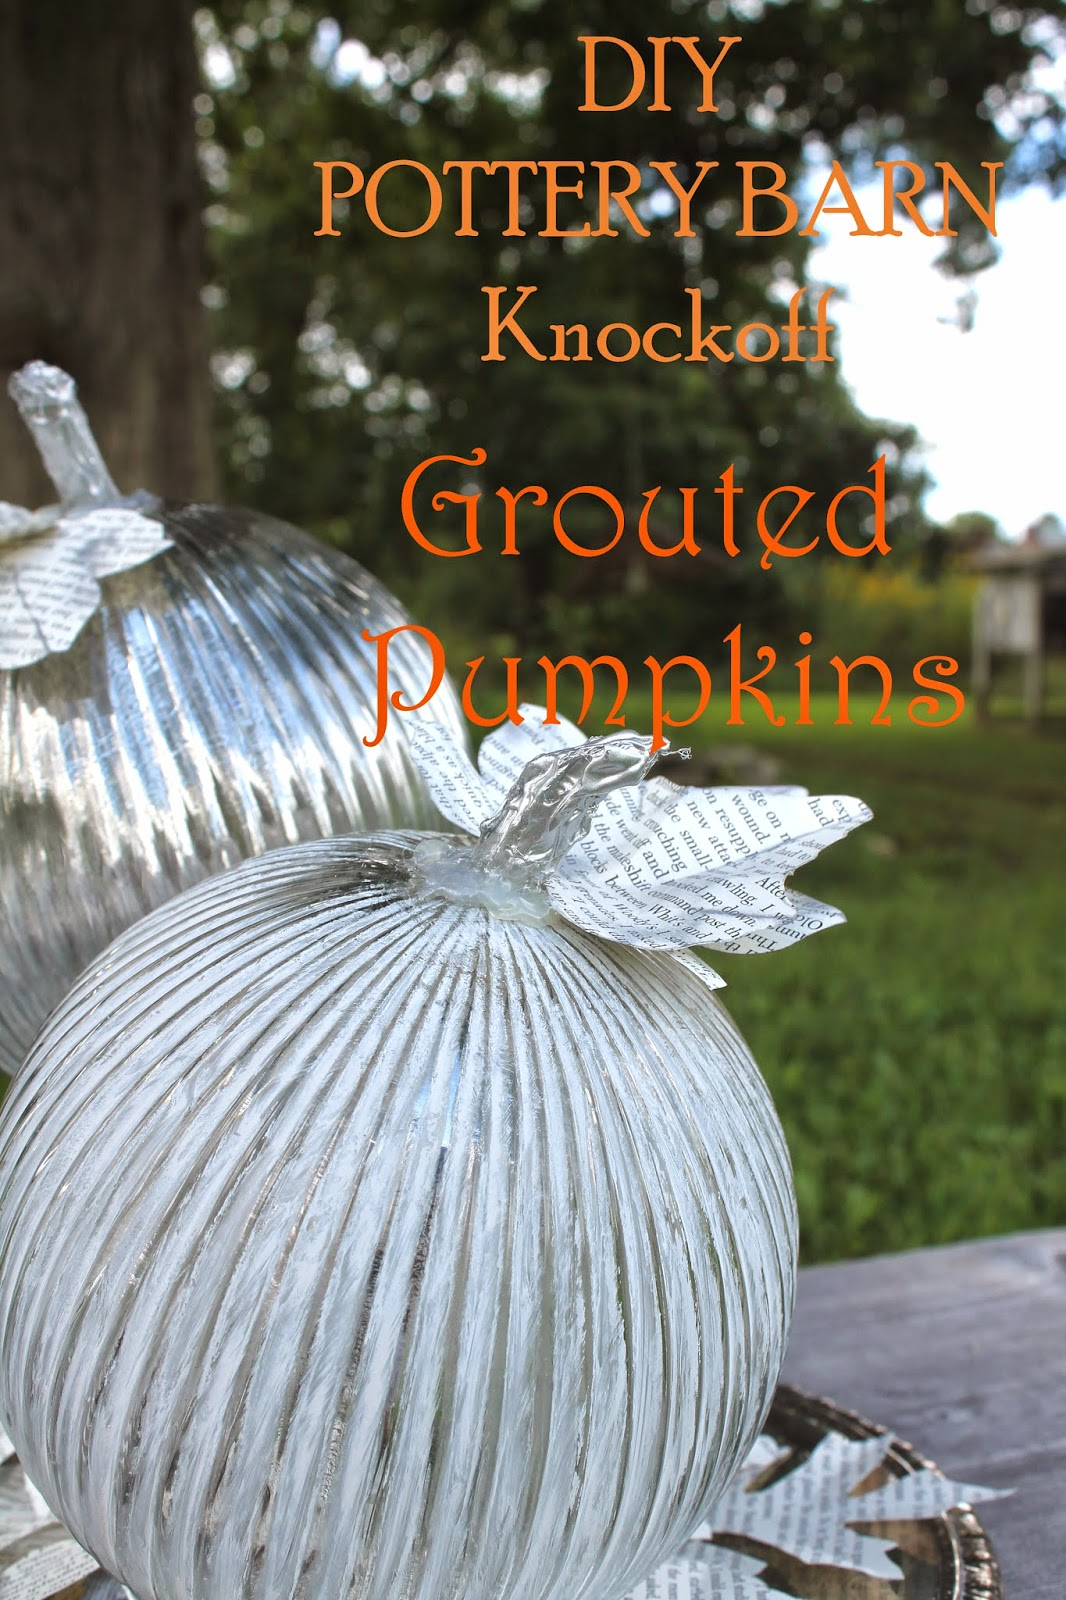 Vintage, Paint and more... The Altered Past DIY Pottery Barn Knock Off Grouted Pumpkins